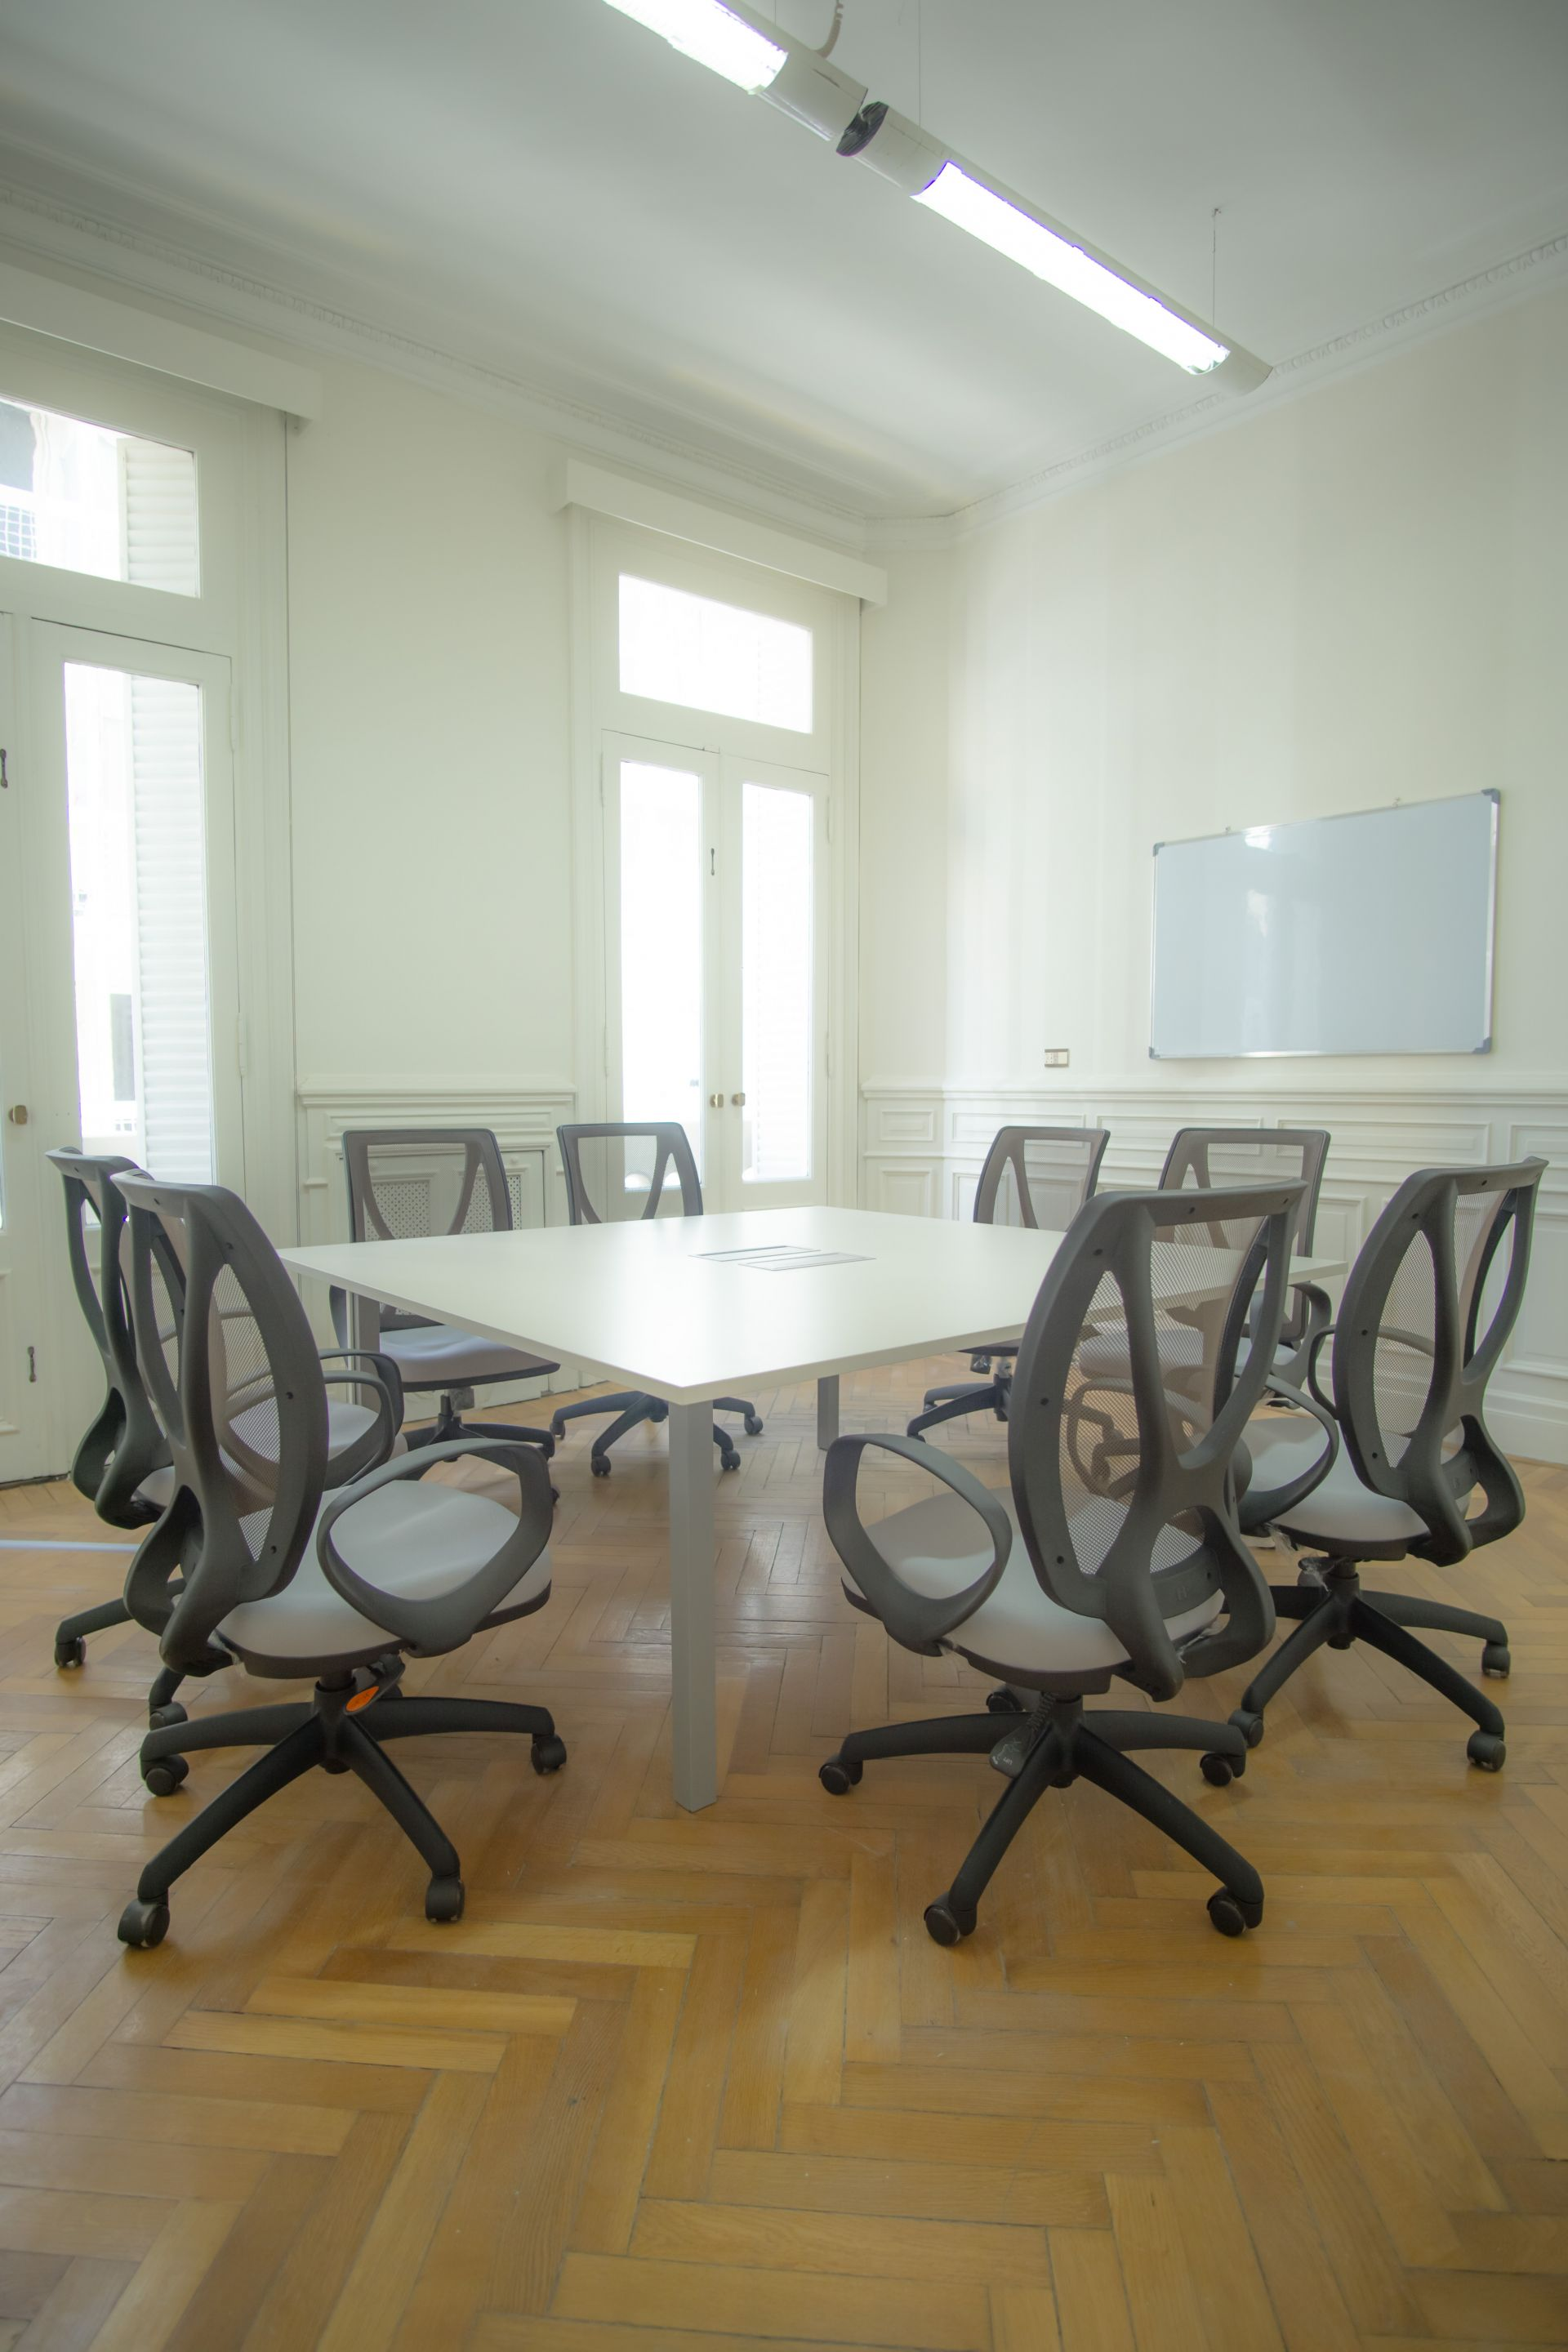 RANCHO COWORKING, Buenos Aires